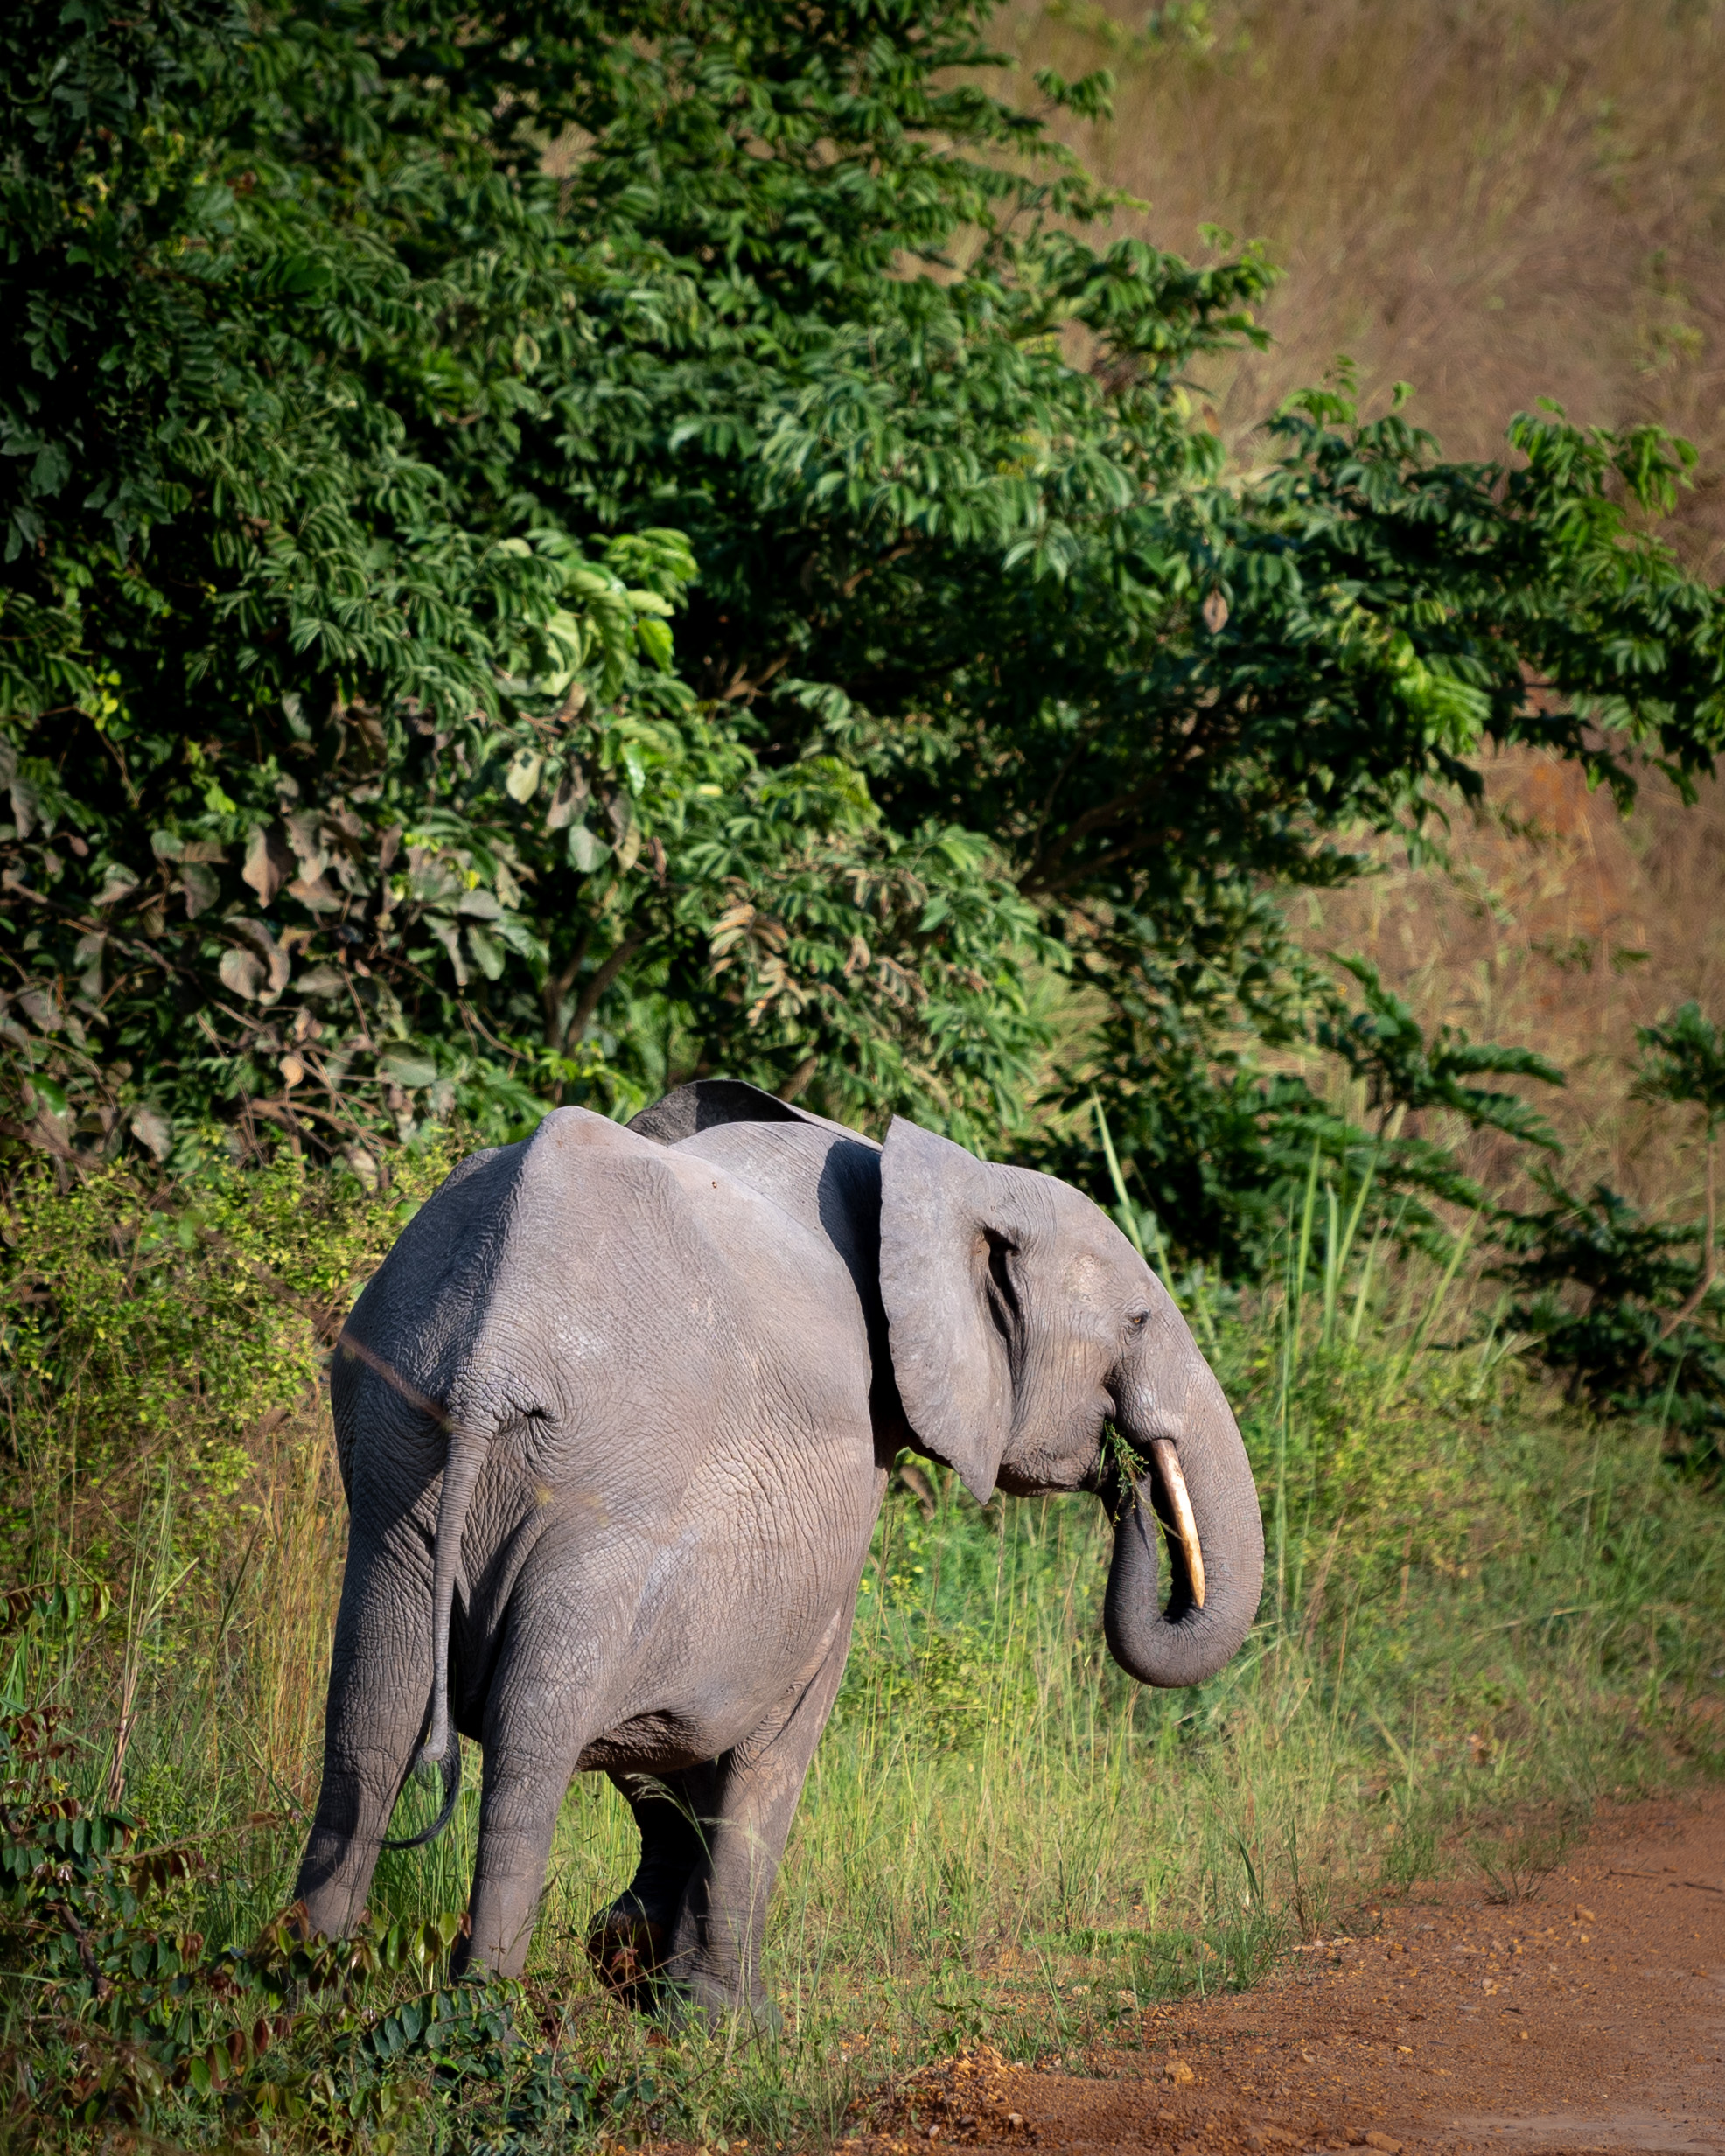 Elephant in Lope National Park